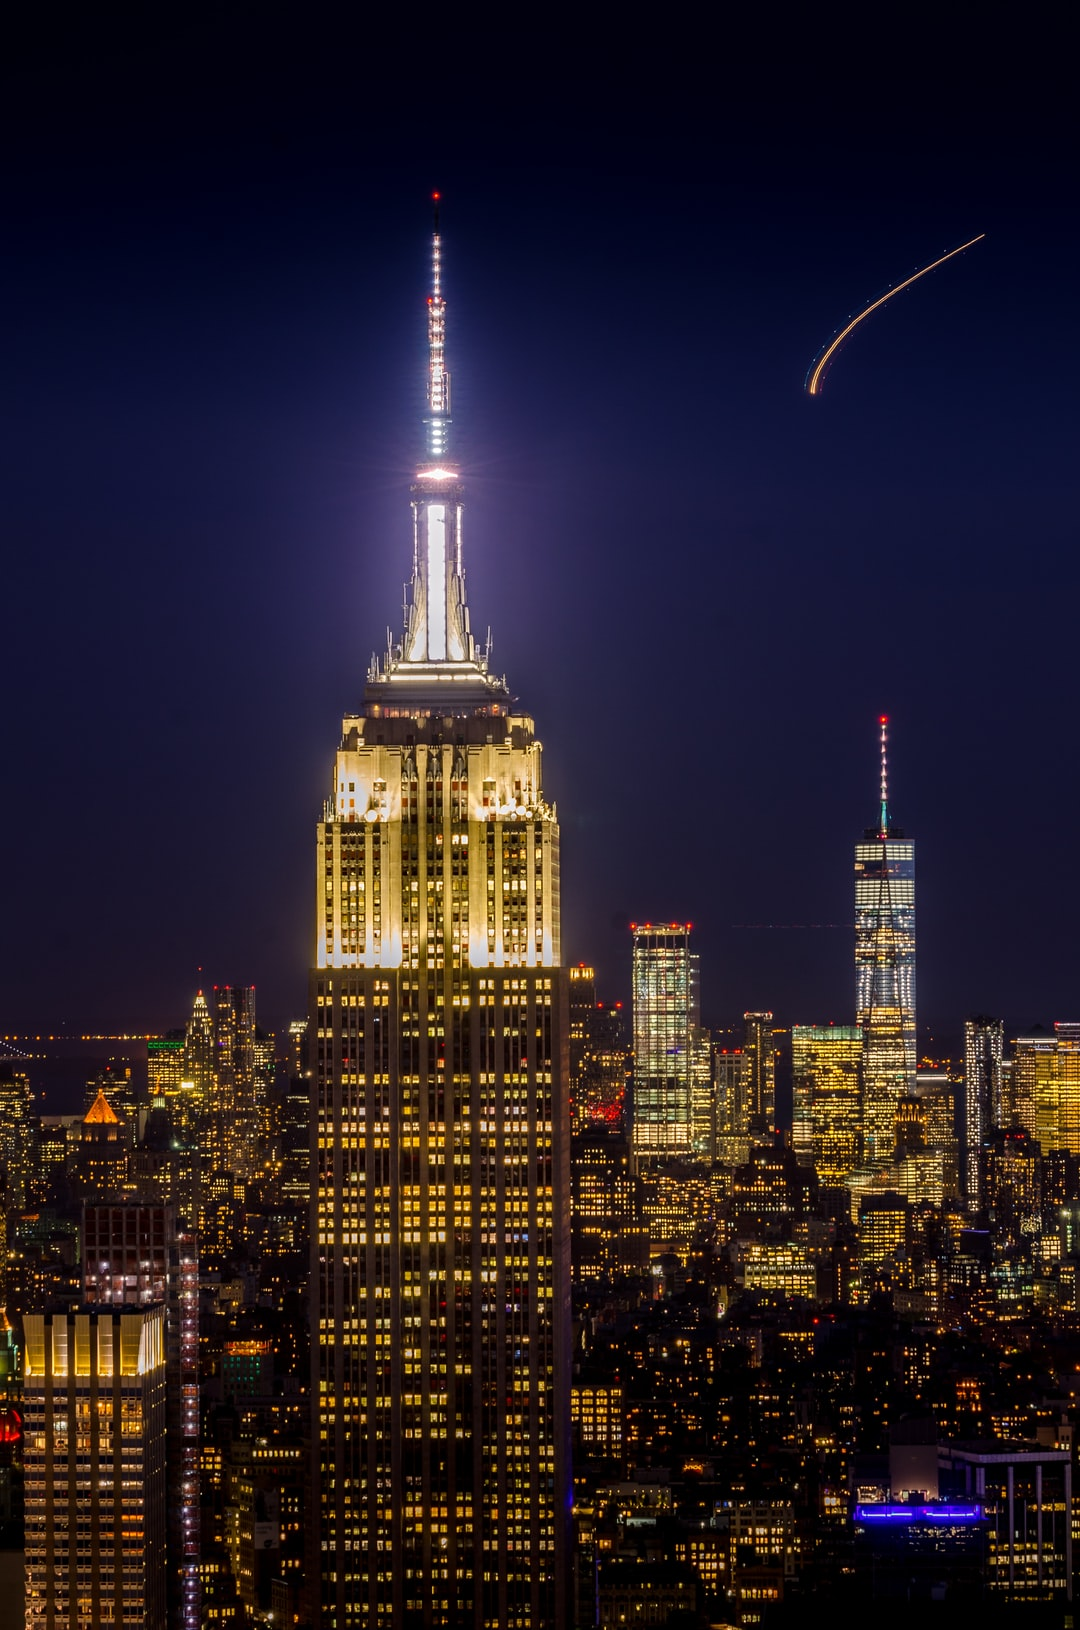 Empire State Building & New York City Skyline At Night